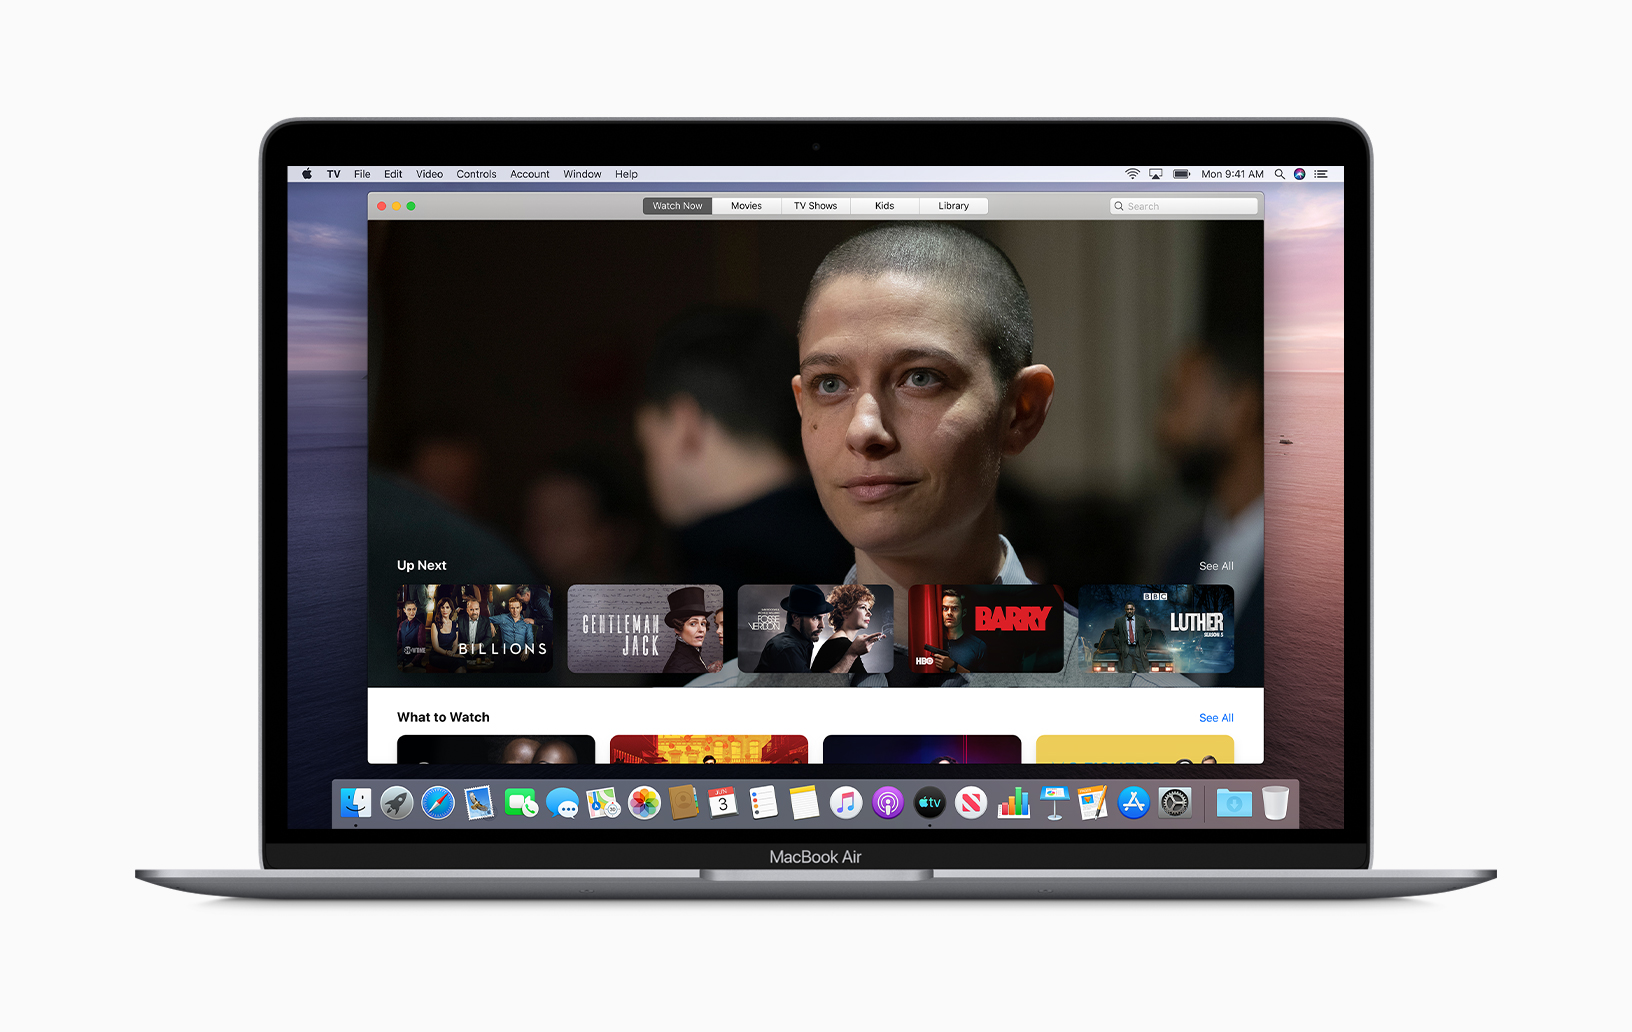 Download iphone apps on mac